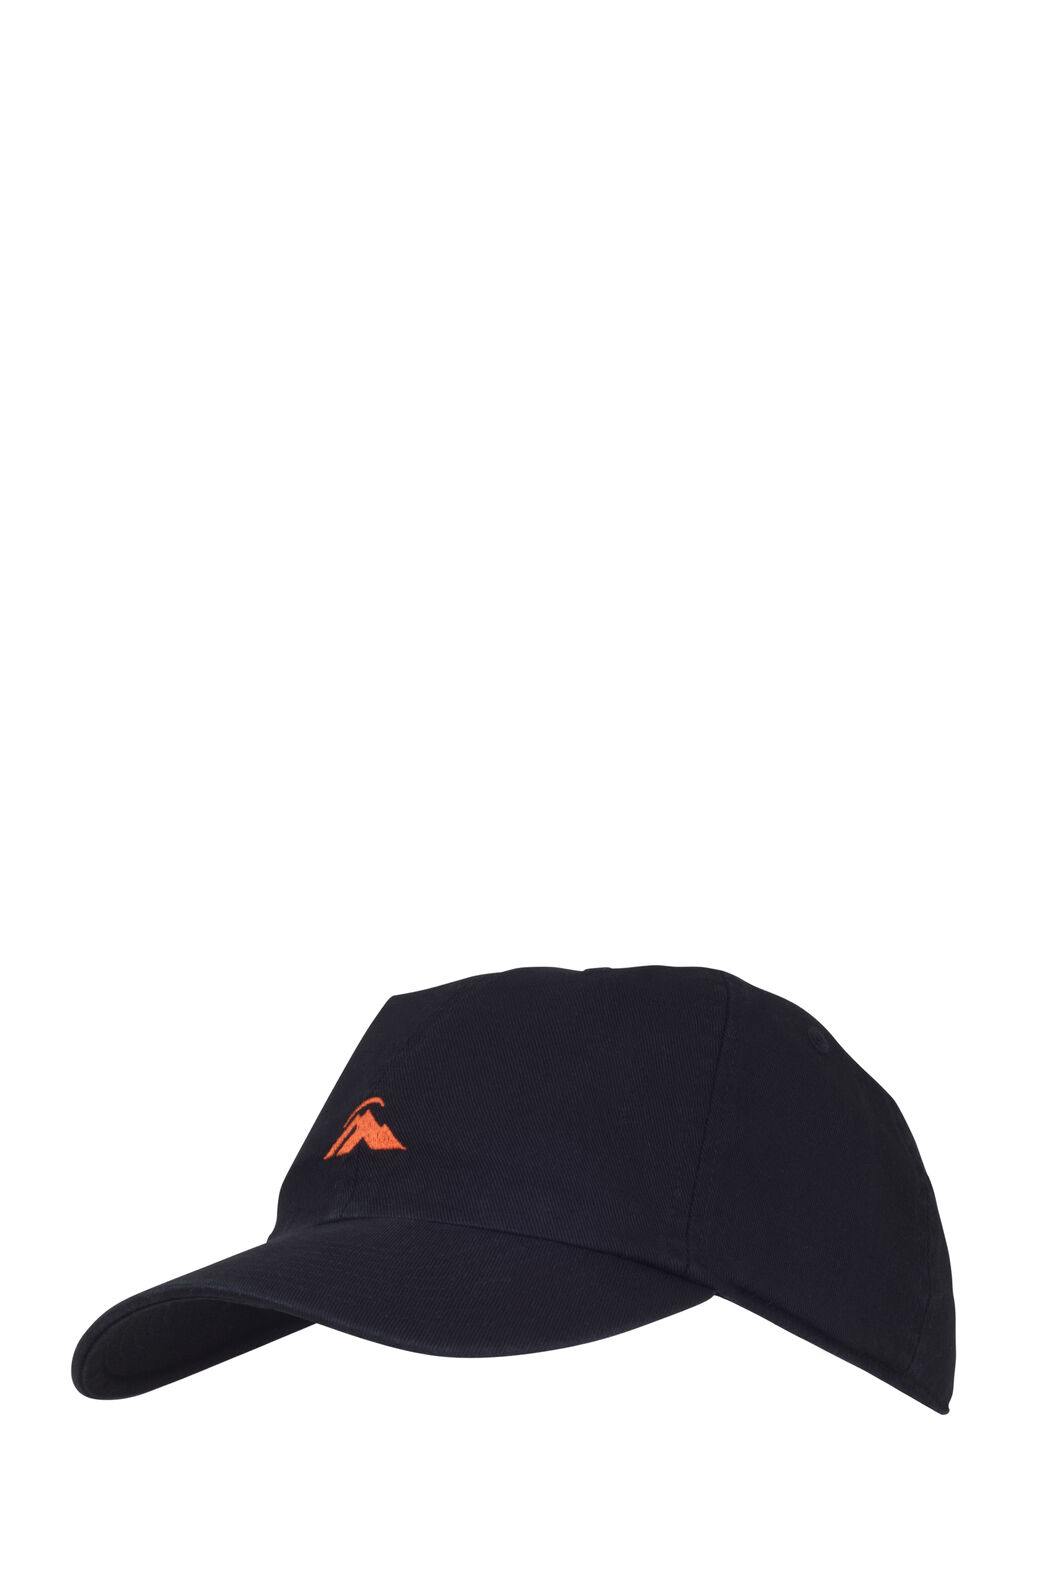 Macpac Vintage Cap, Black/Spicy Orange, hi-res